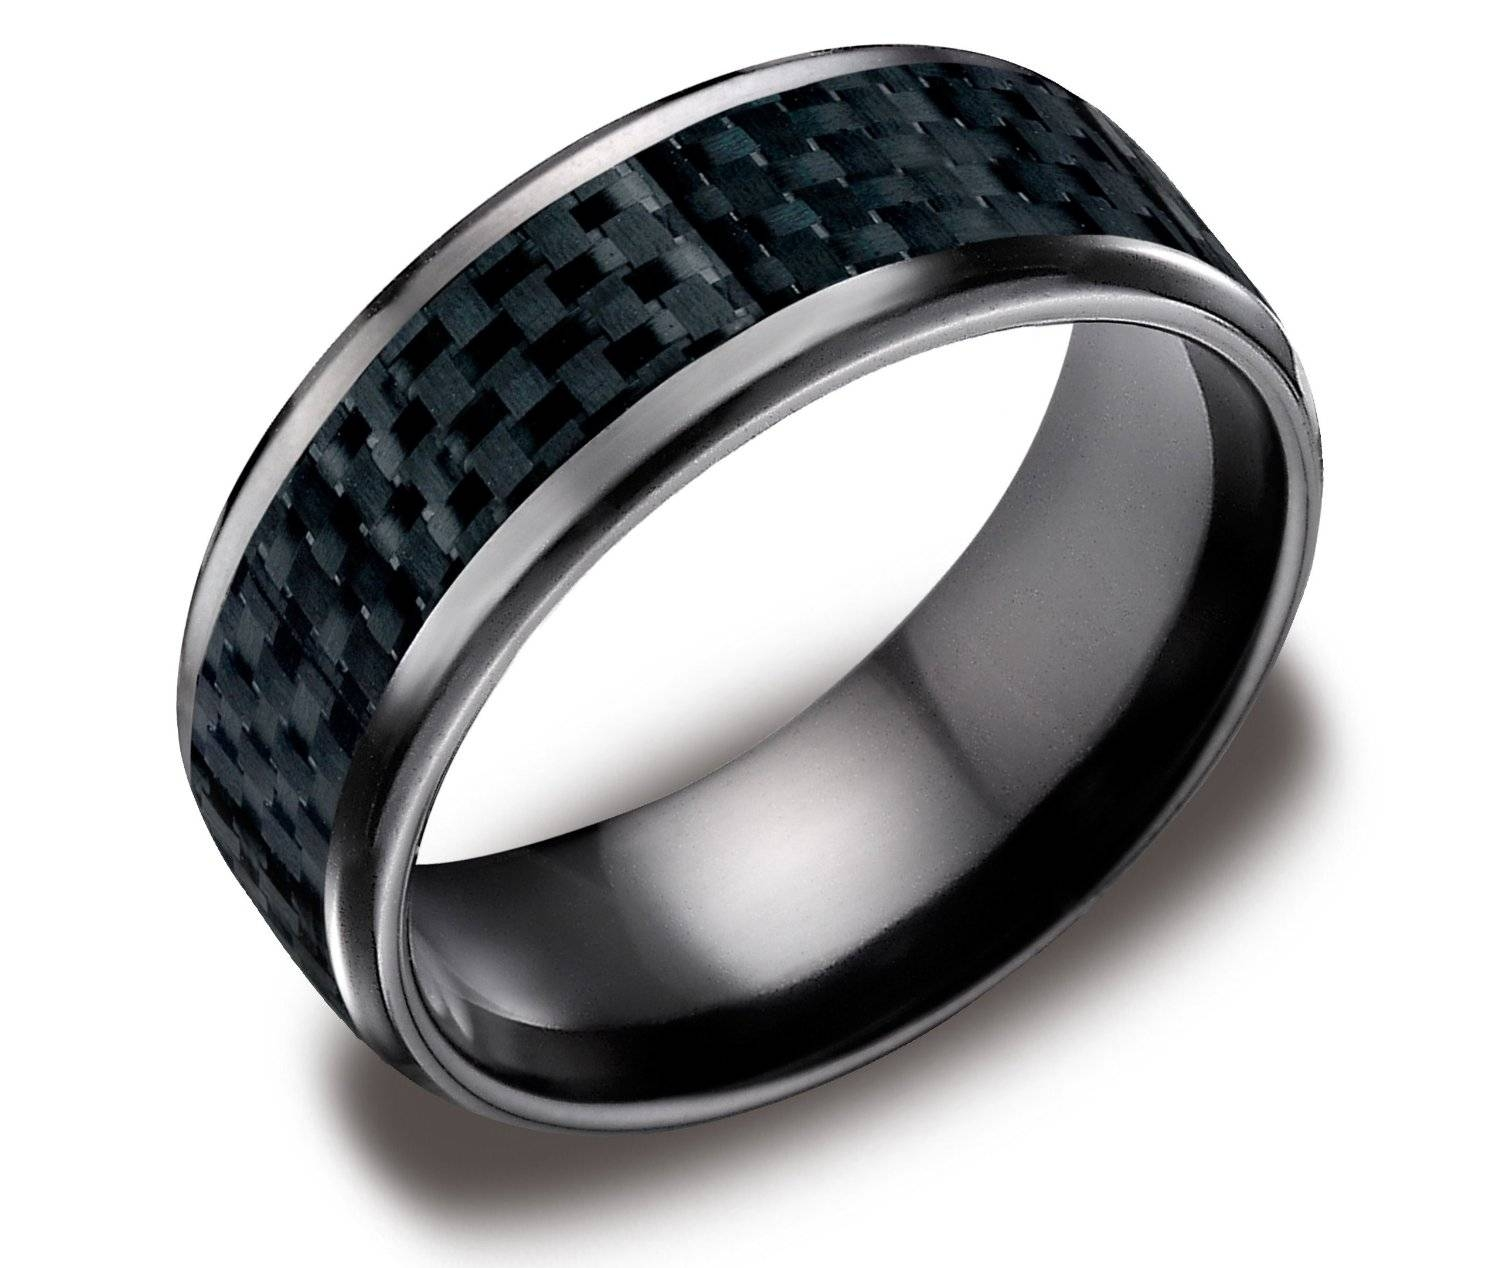 Wedding Rings For Men: Minimalist, Vintage And Futuristic Ideas Throughout Black Wedding Bands For Him (View 15 of 15)